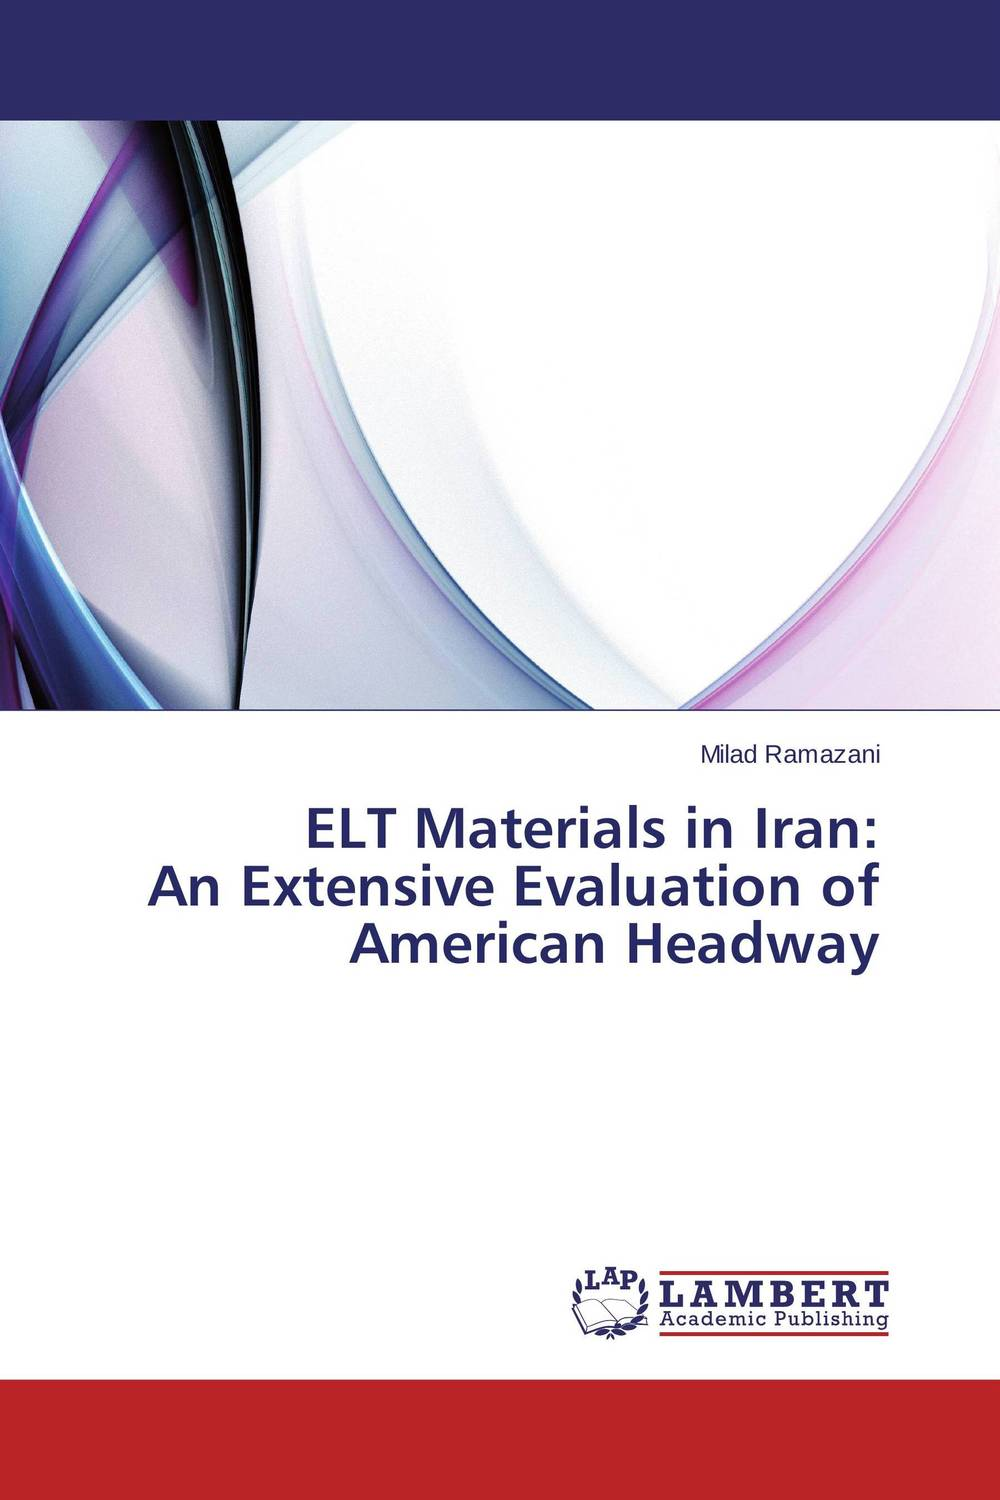 ELT Materials in Iran:  An Extensive Evaluation of American Headway